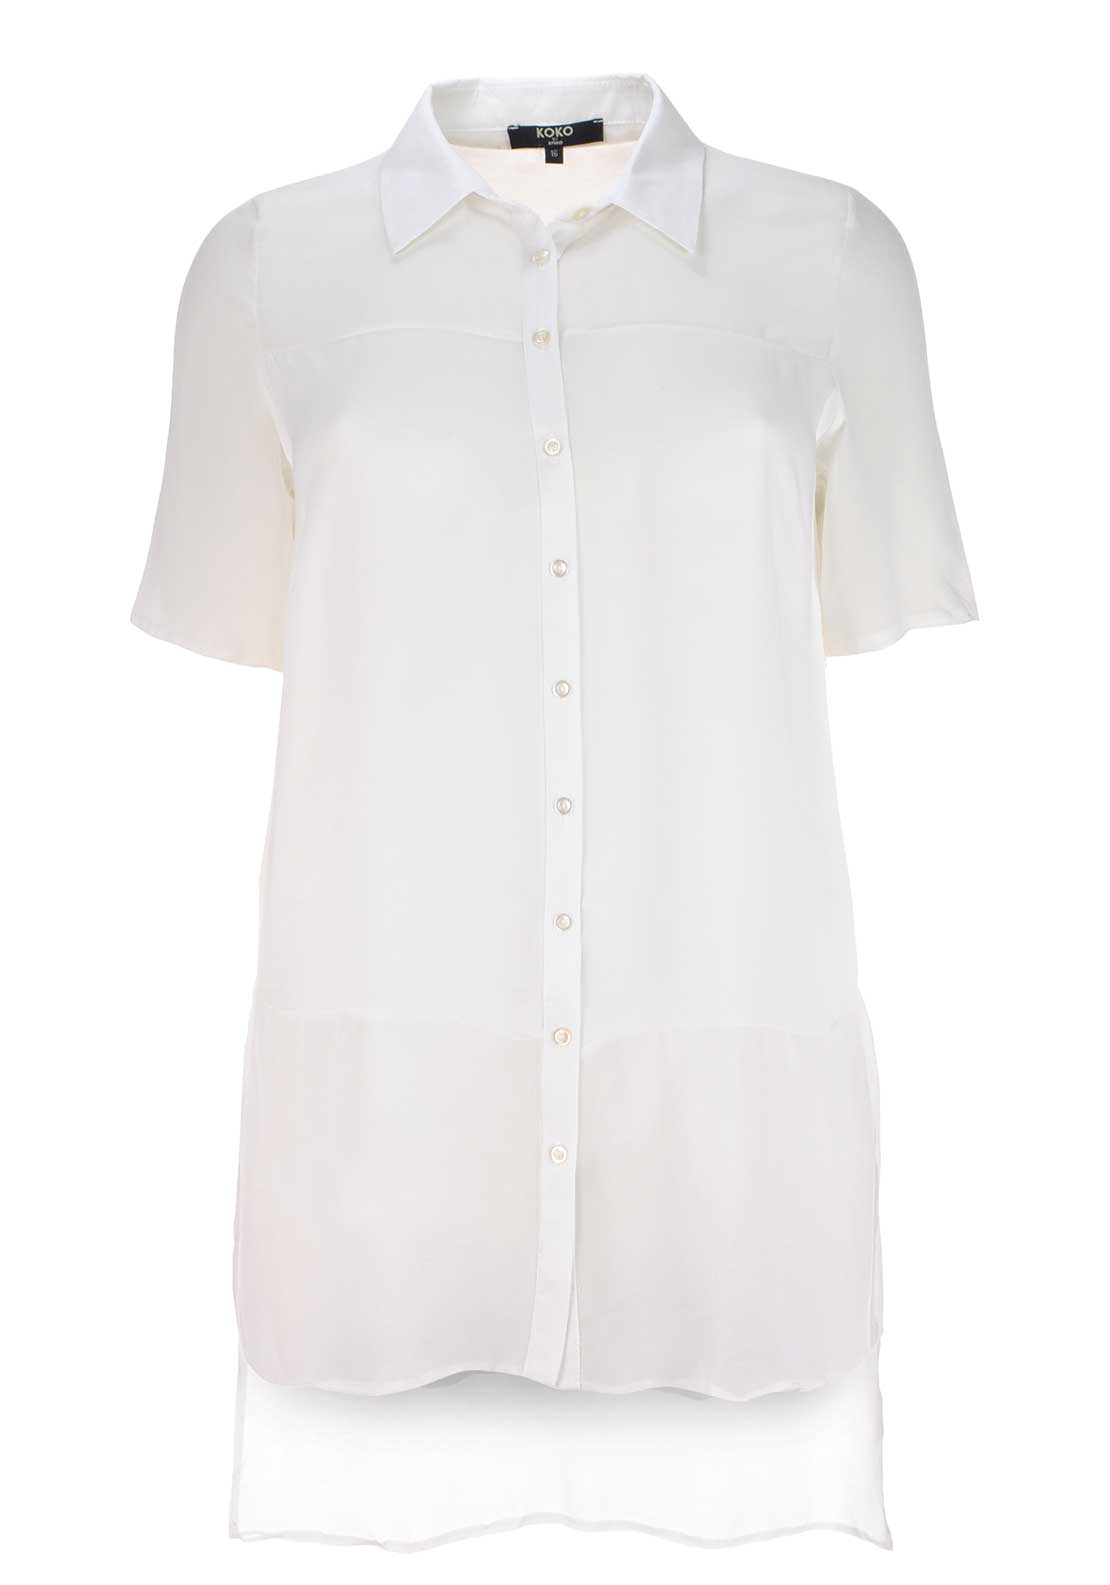 Lovedrobe Semi Sheer Tunic Top, Ivory